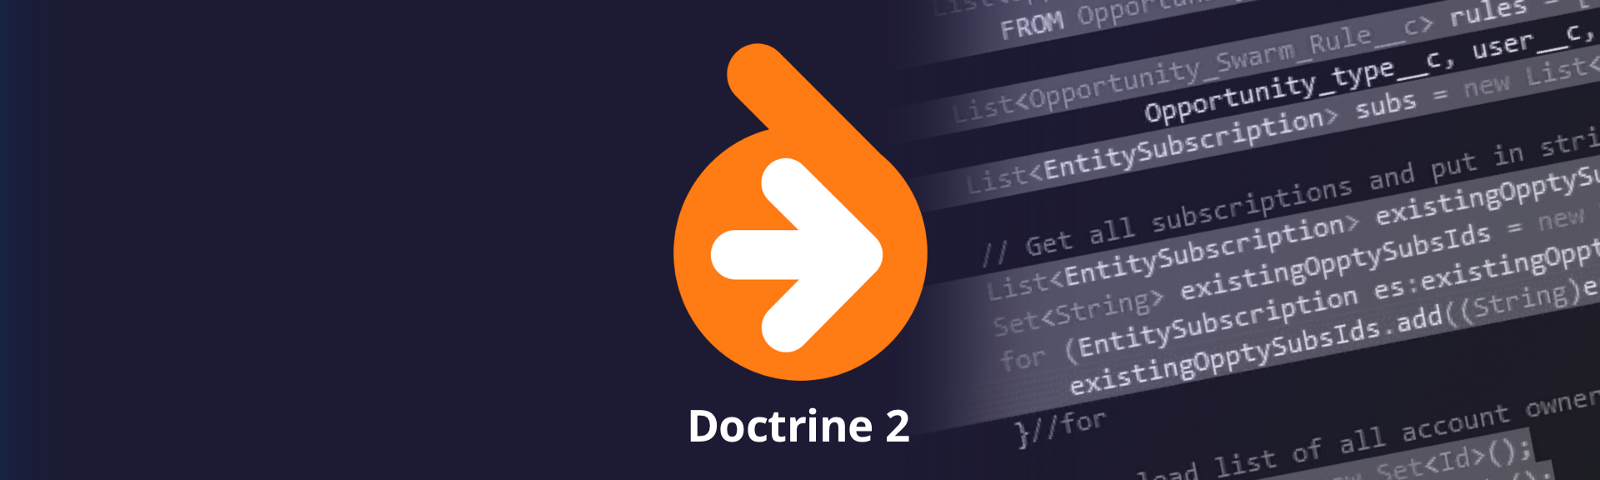 Let's Look Under the Hood of Doctrine 2 | Blog | Web and